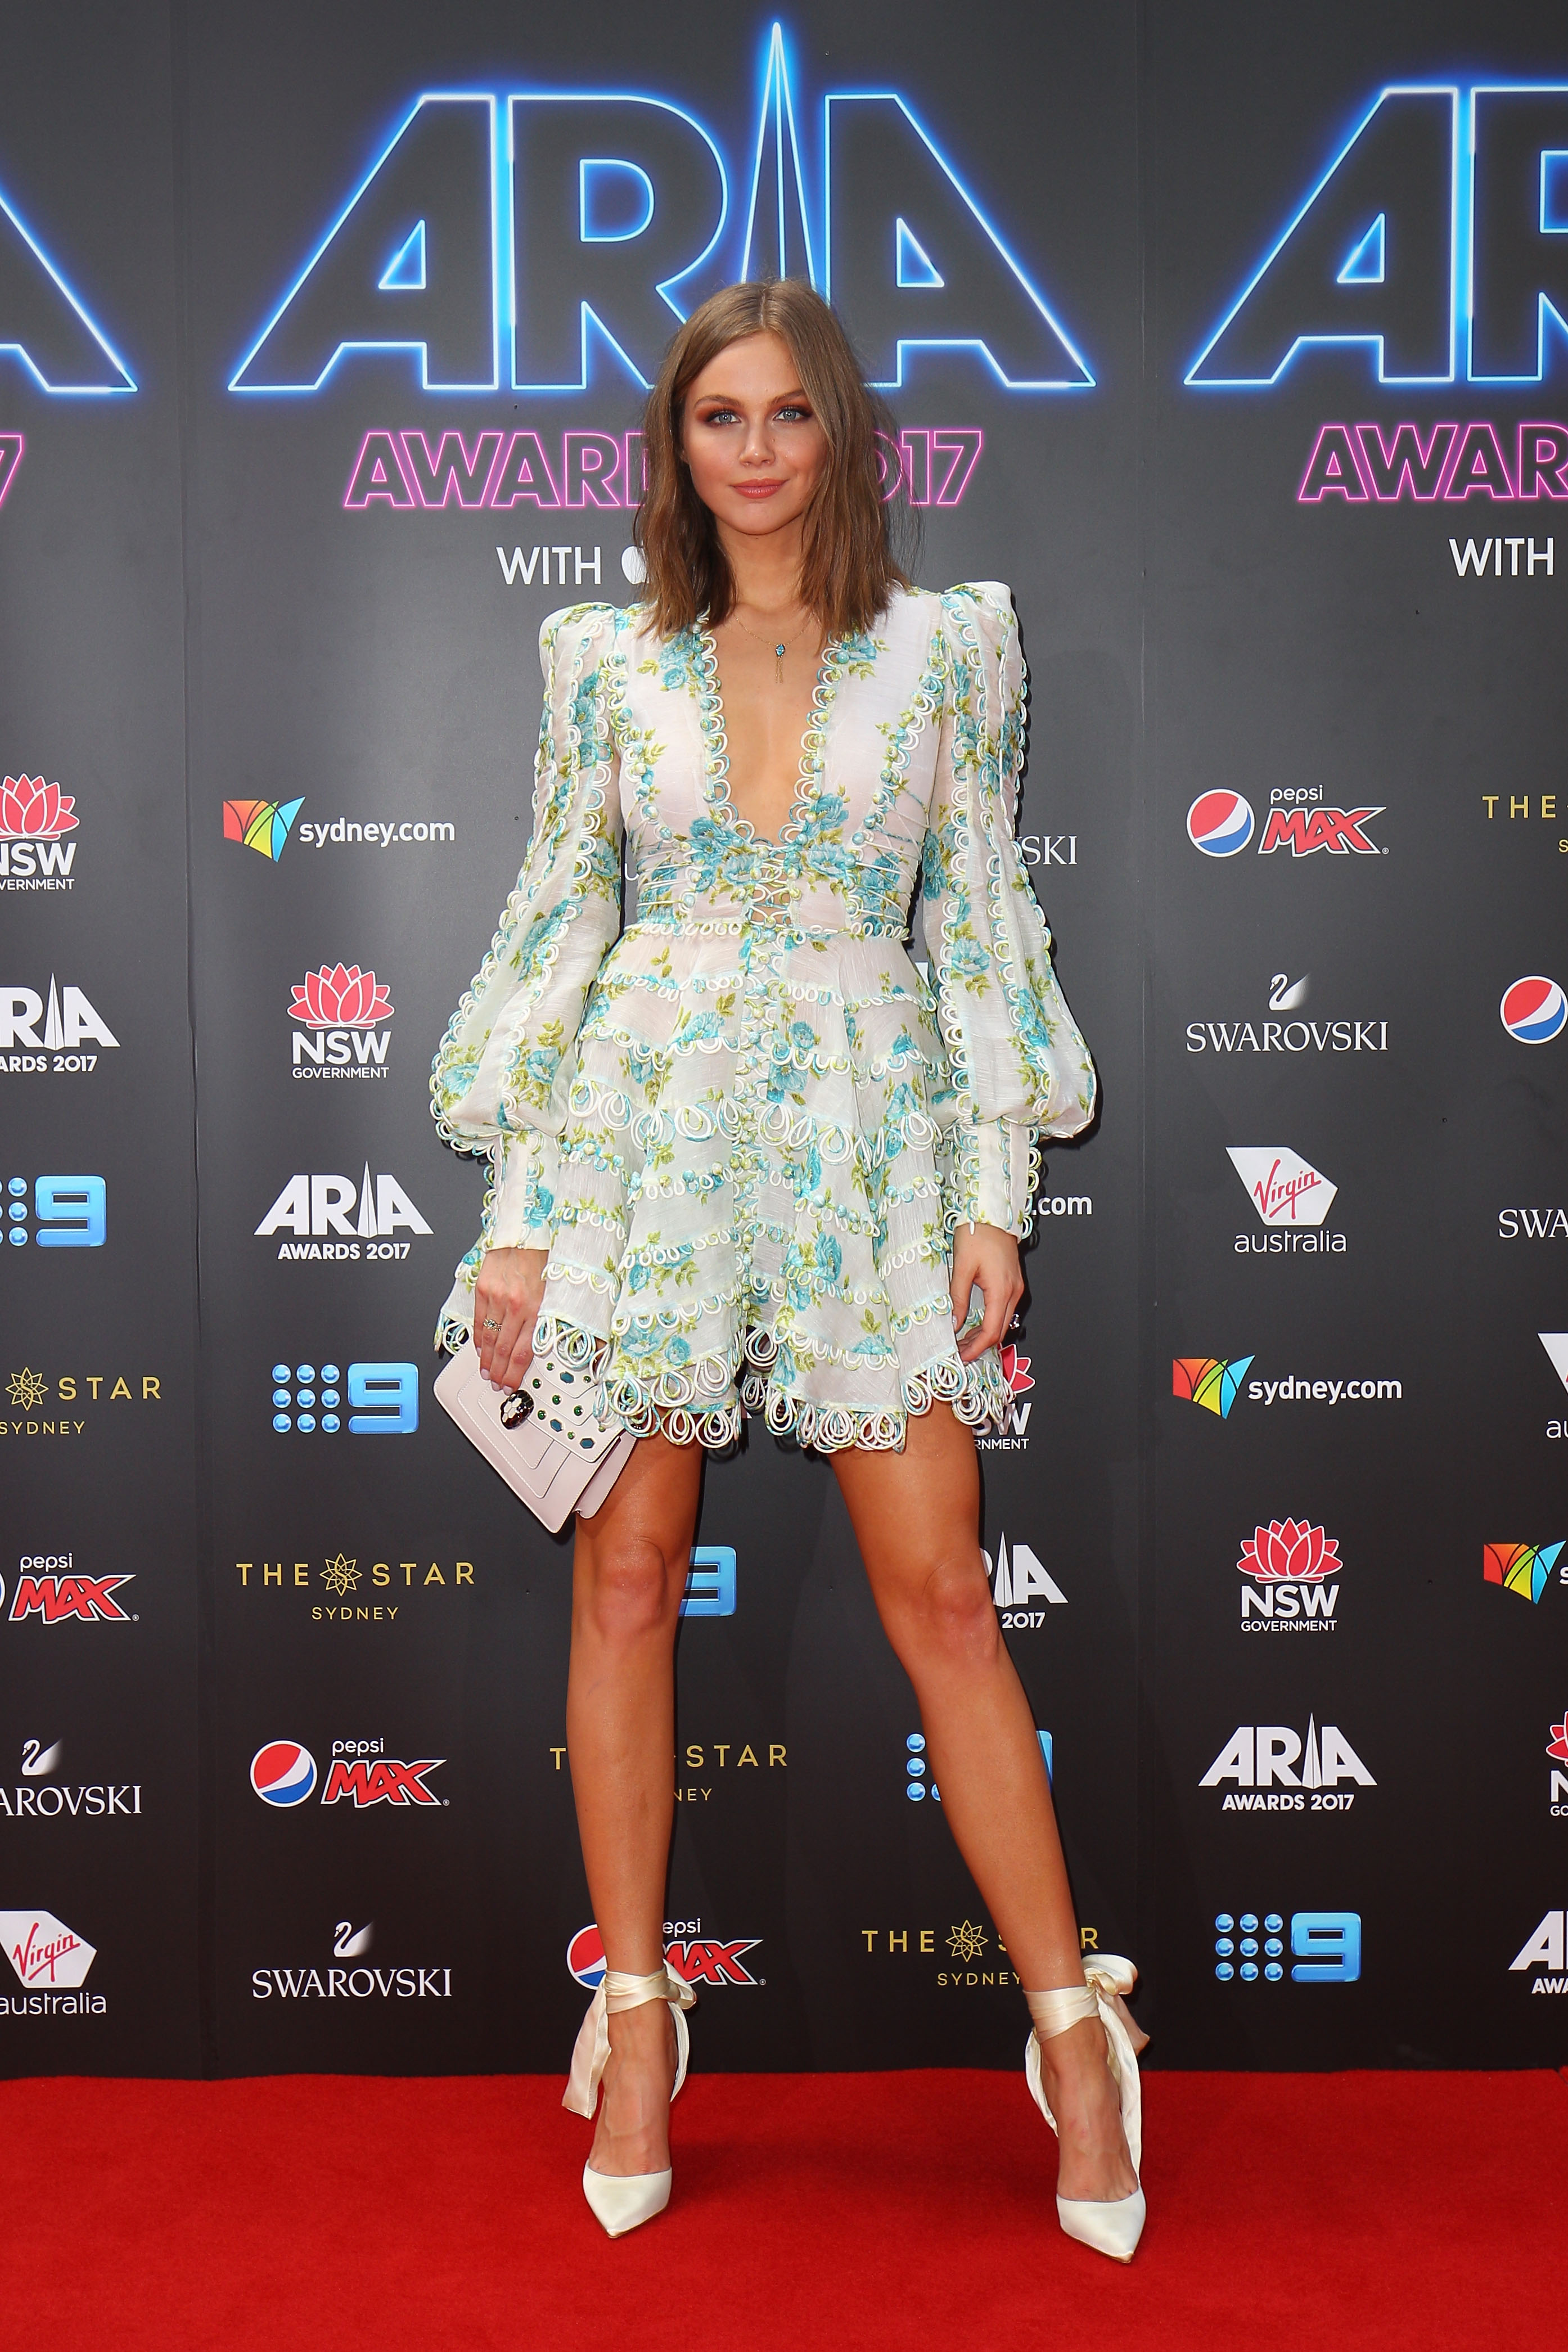 <p>The ARIA Music Awards are like Christmas for Australian pop stars, TV personalities and Insta-celebrities as they abandon all dress codes and wear whatever they want - or can beg, borrow and steal from a stylist.</p> <p>With jewelry giant Swarovski sponsoring this year's red-carpet we hope the ensembles pack plenty of sparkle.</p> <p>Here are the most stylish, outrageous and intriguing ensembles on the red carpet at the 2017 ARIA Awards.</p> <p>Take it away E! Australia hostKsenija Lukich in Zimmermann.</p>